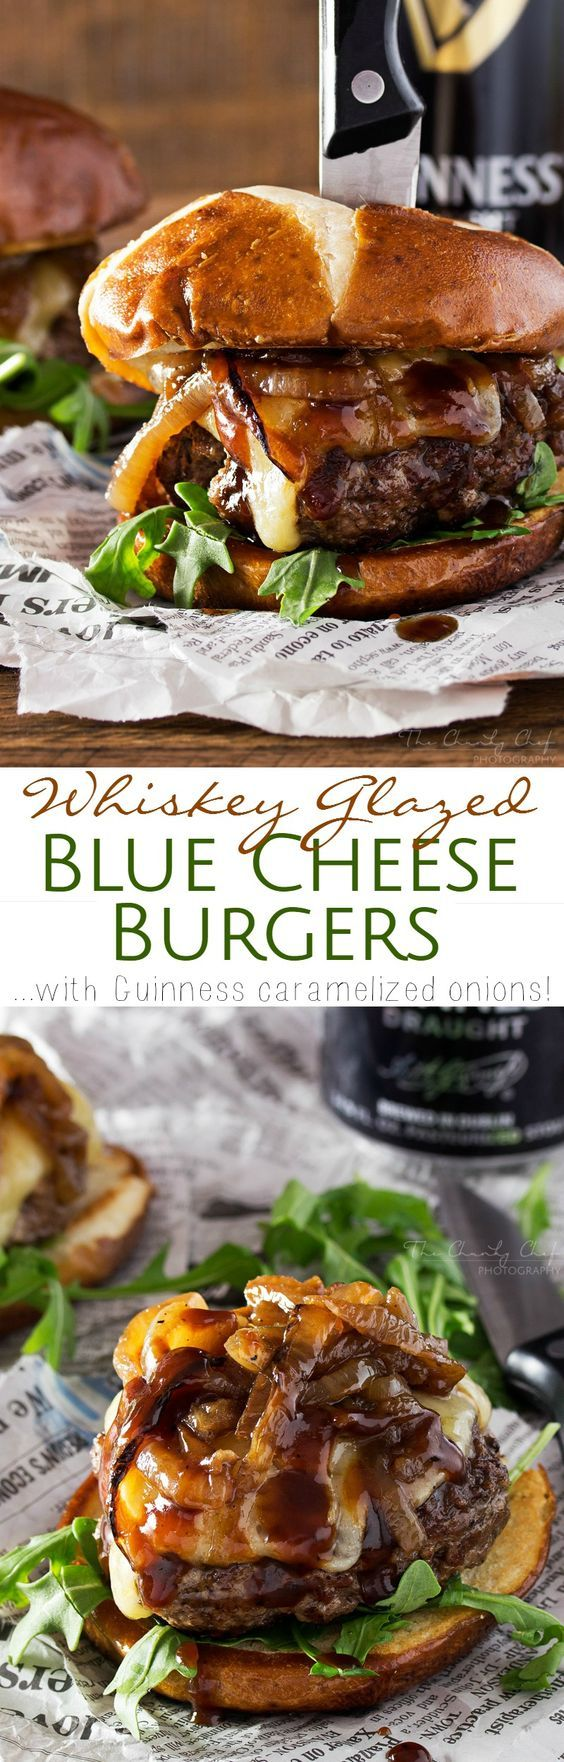 Whiskey-Glazed-Blue-Cheese-Burgers | These blue cheese burgers are brushed with a homemade whiskey glazed, topped with Irish cheese, and smothered in Guinness caramelized onions!: